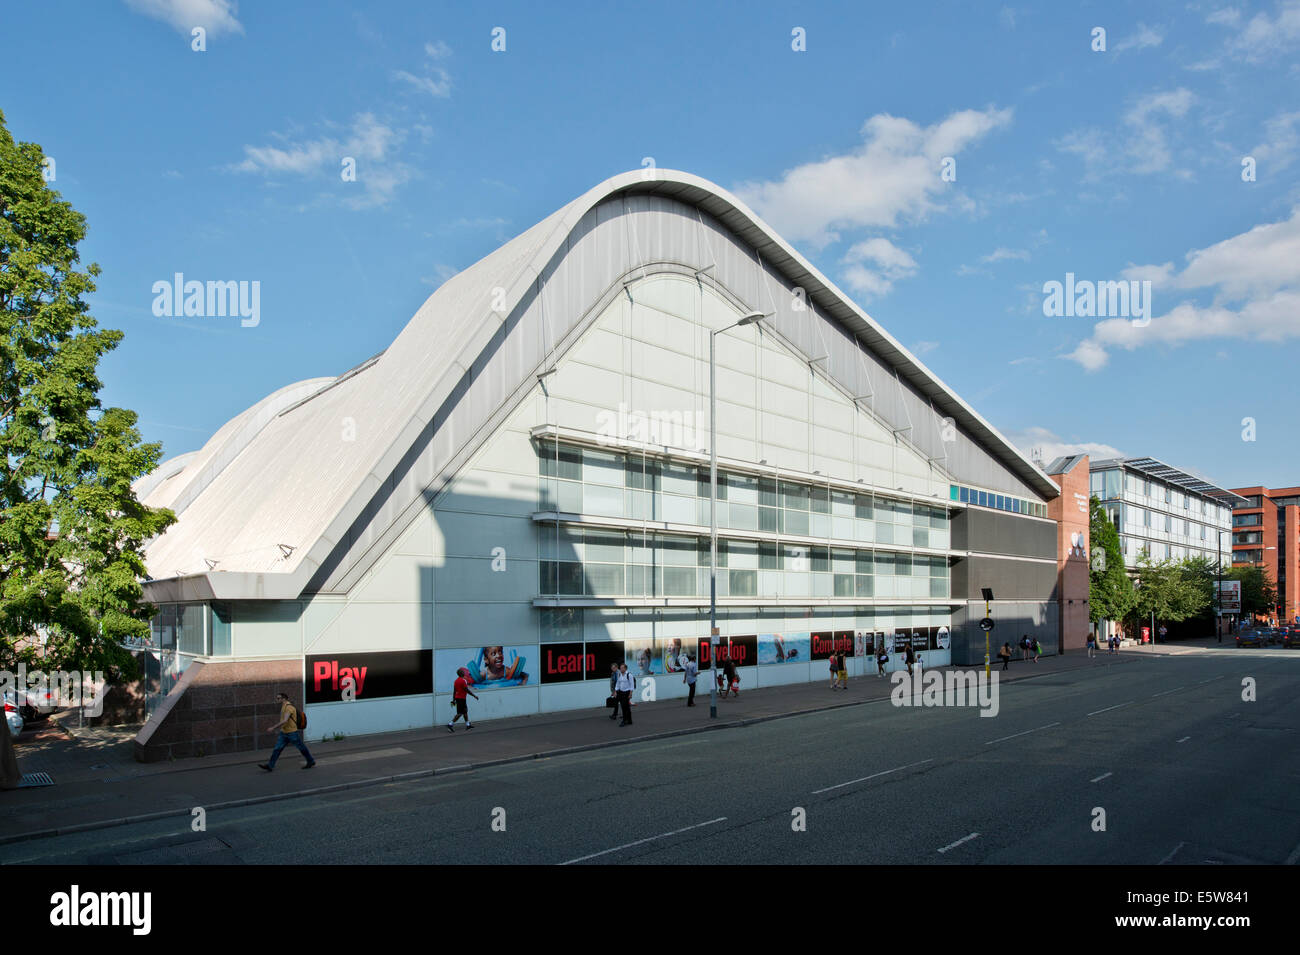 Manchester Aquatics Centre building on a sunny day, located on Oxford Road in the University campus area of the - Stock Image